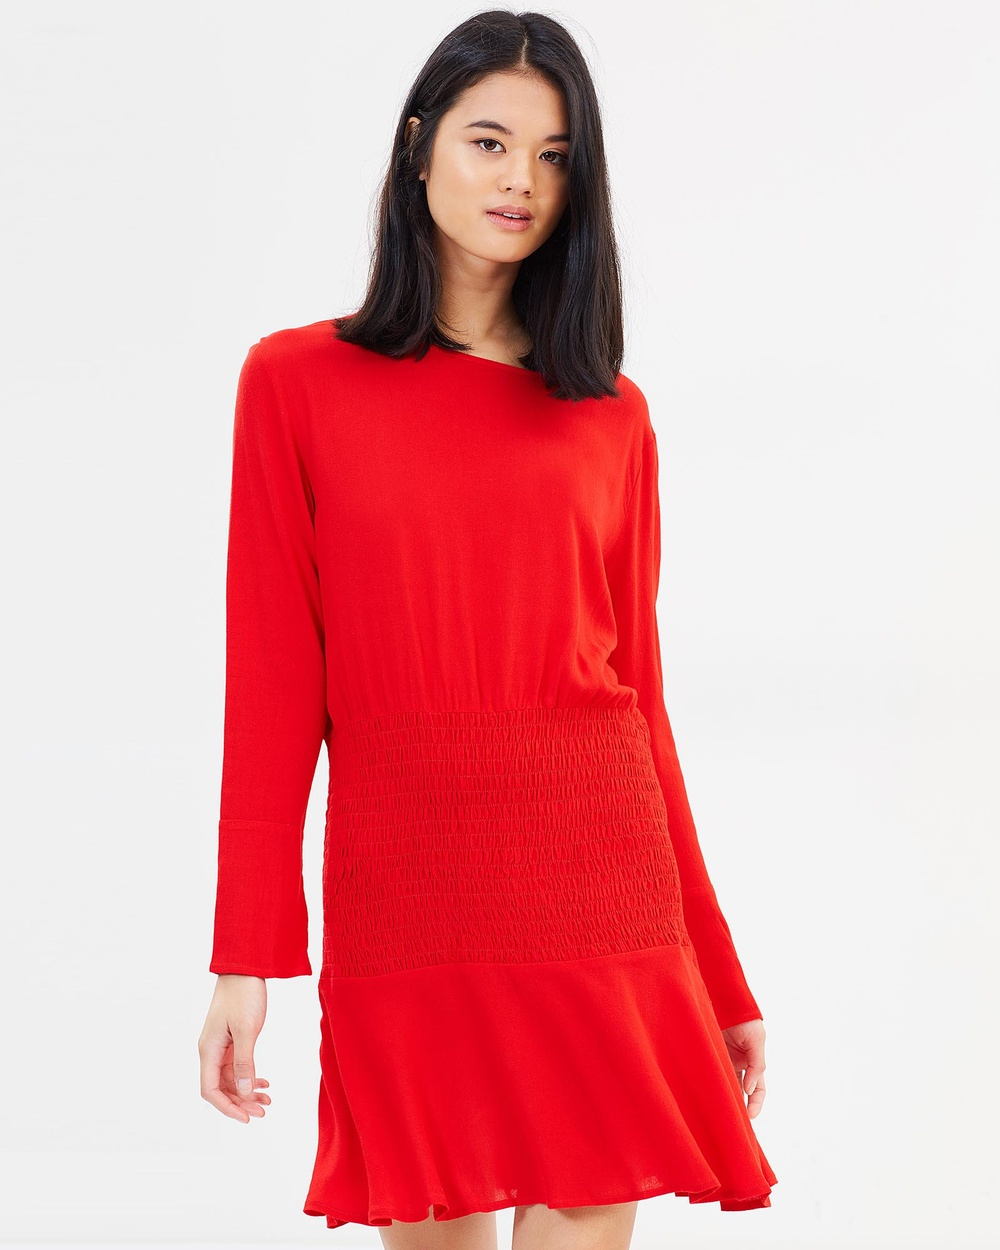 Otto Mode Half Moon Dress Dresses Red Half Moon Dress